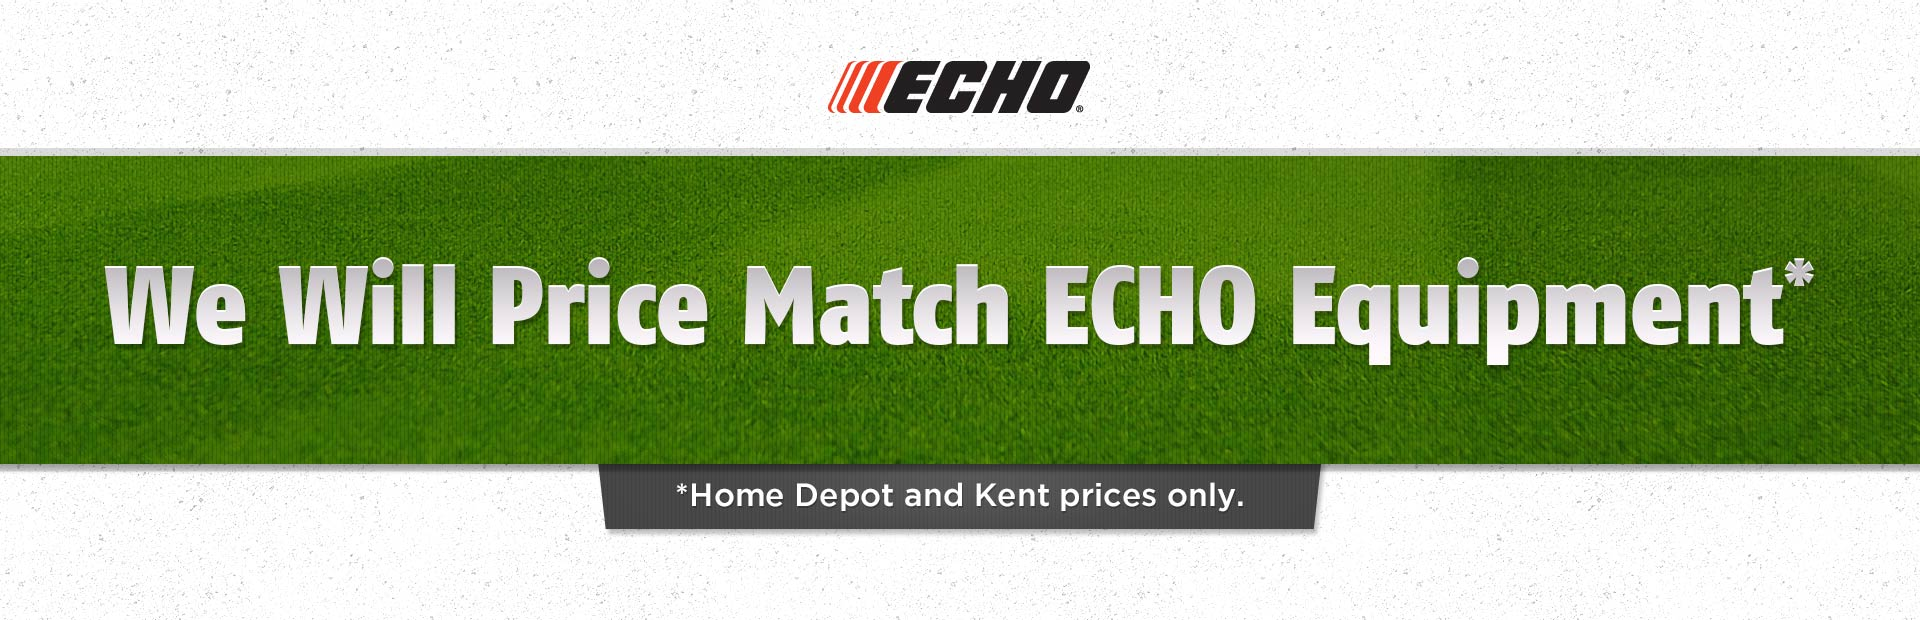 We will price match ECHO equipment (Home Depot and Kent prices only)!